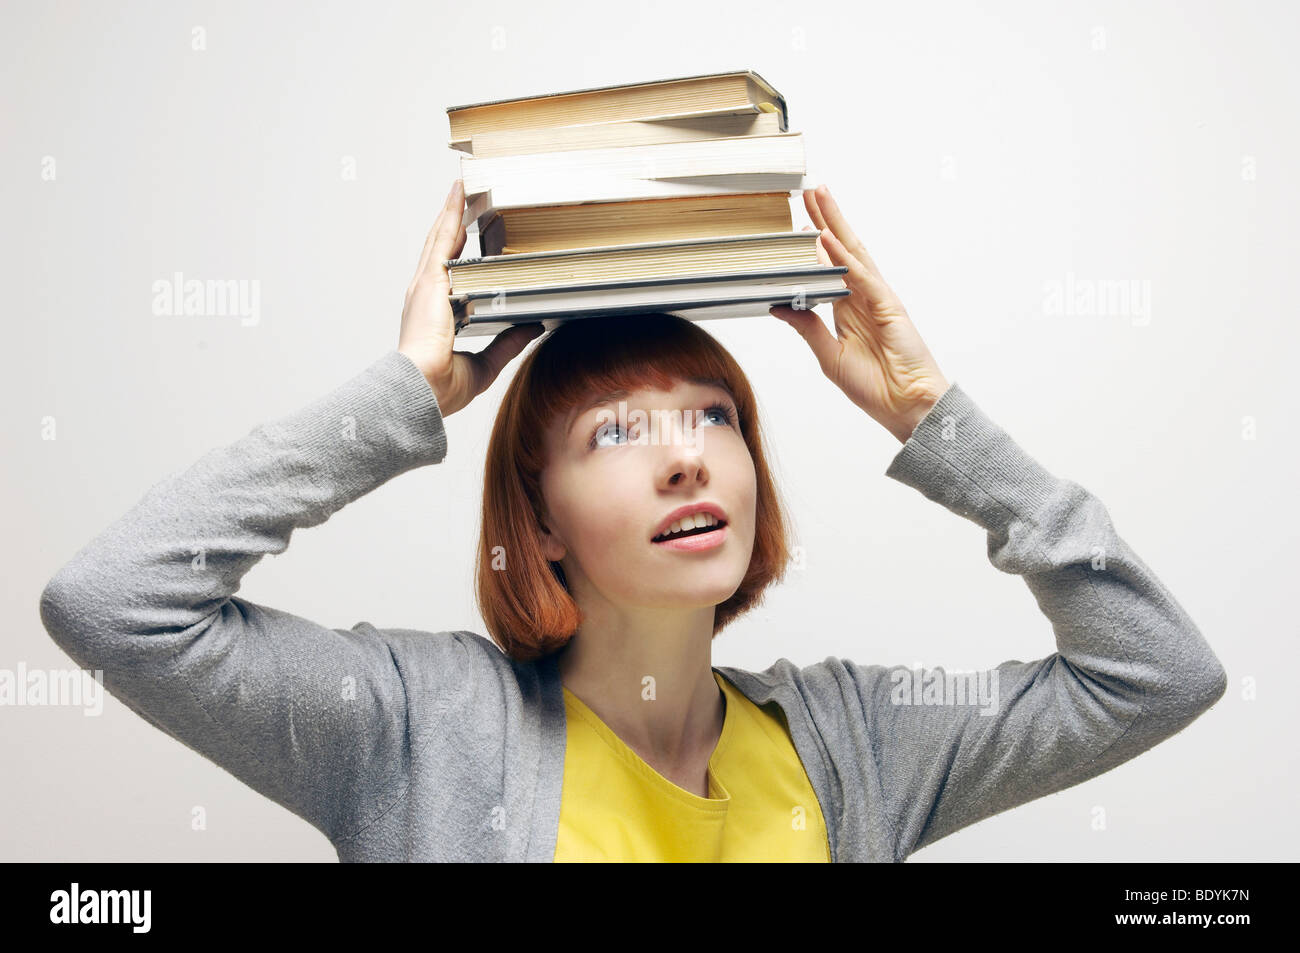 Woman balancing books on head Banque D'Images